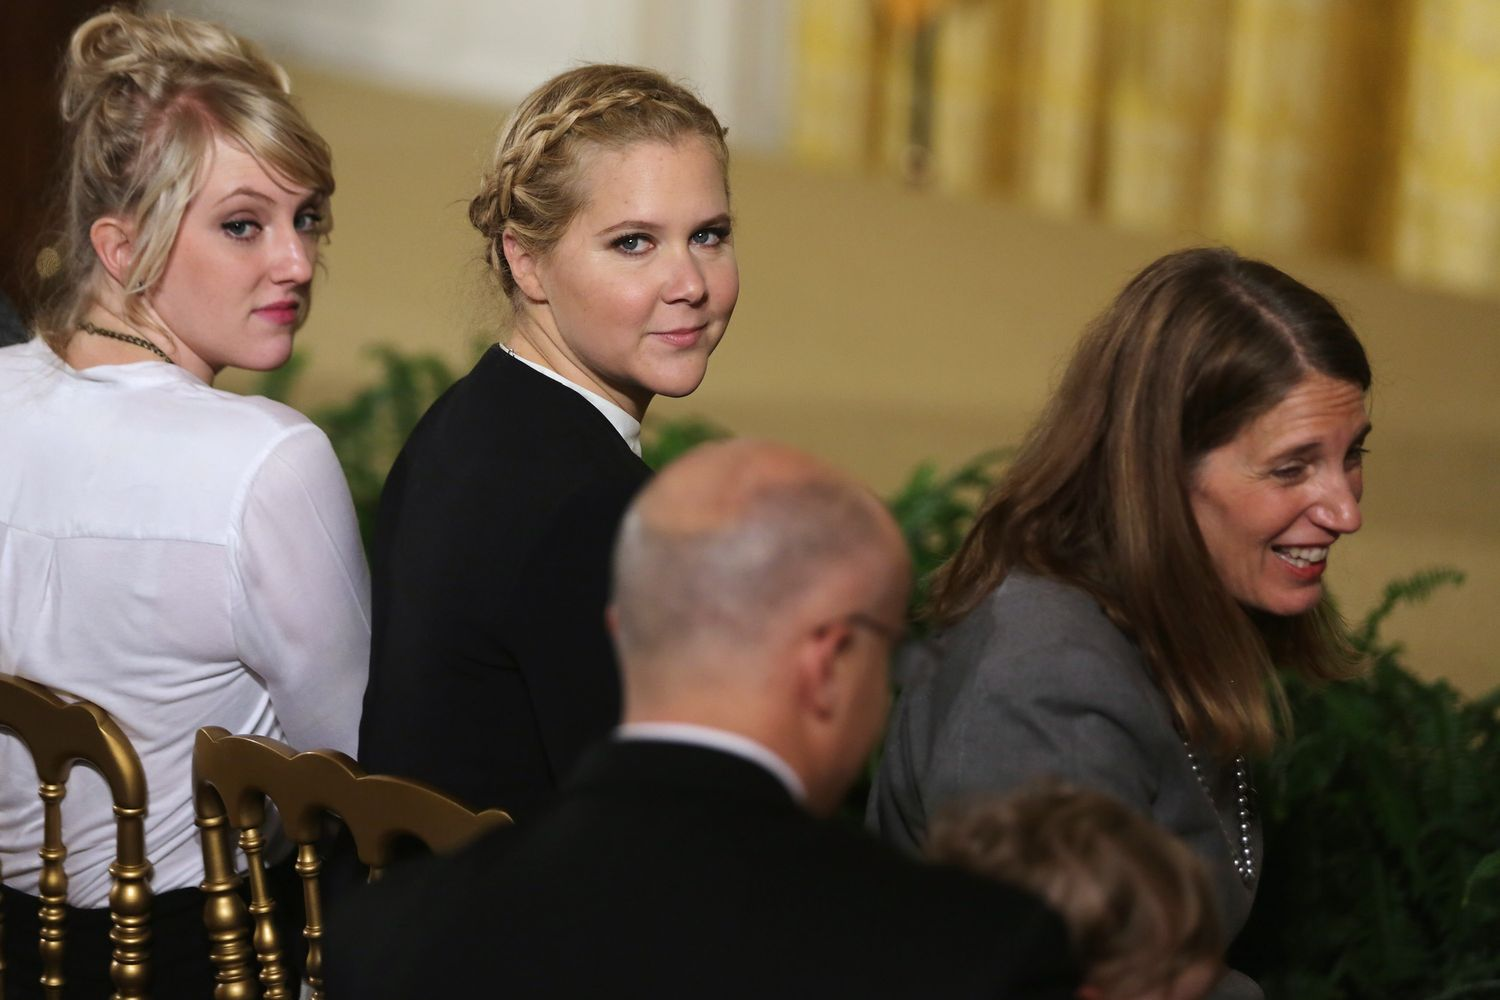 WASHINGTON, DC - JANUARY 05: Comedian Amy Schumer (C) and Health and Human Services Secretary Sylvia Mathews Burwell (R) wait for the arrival of U.S. President Barack Obama before he delivers remarks about his efforts to increase federal gun control in the East Room of the White House January 5, 2016 in Washington, DC. Without approval from Congress, Obama is sidestepping the legislative process with executive actions to expand background checks for some firearm purchases and step up federal enforcement of existing gun laws. (Photo by Chip Somodevilla/Getty Images)